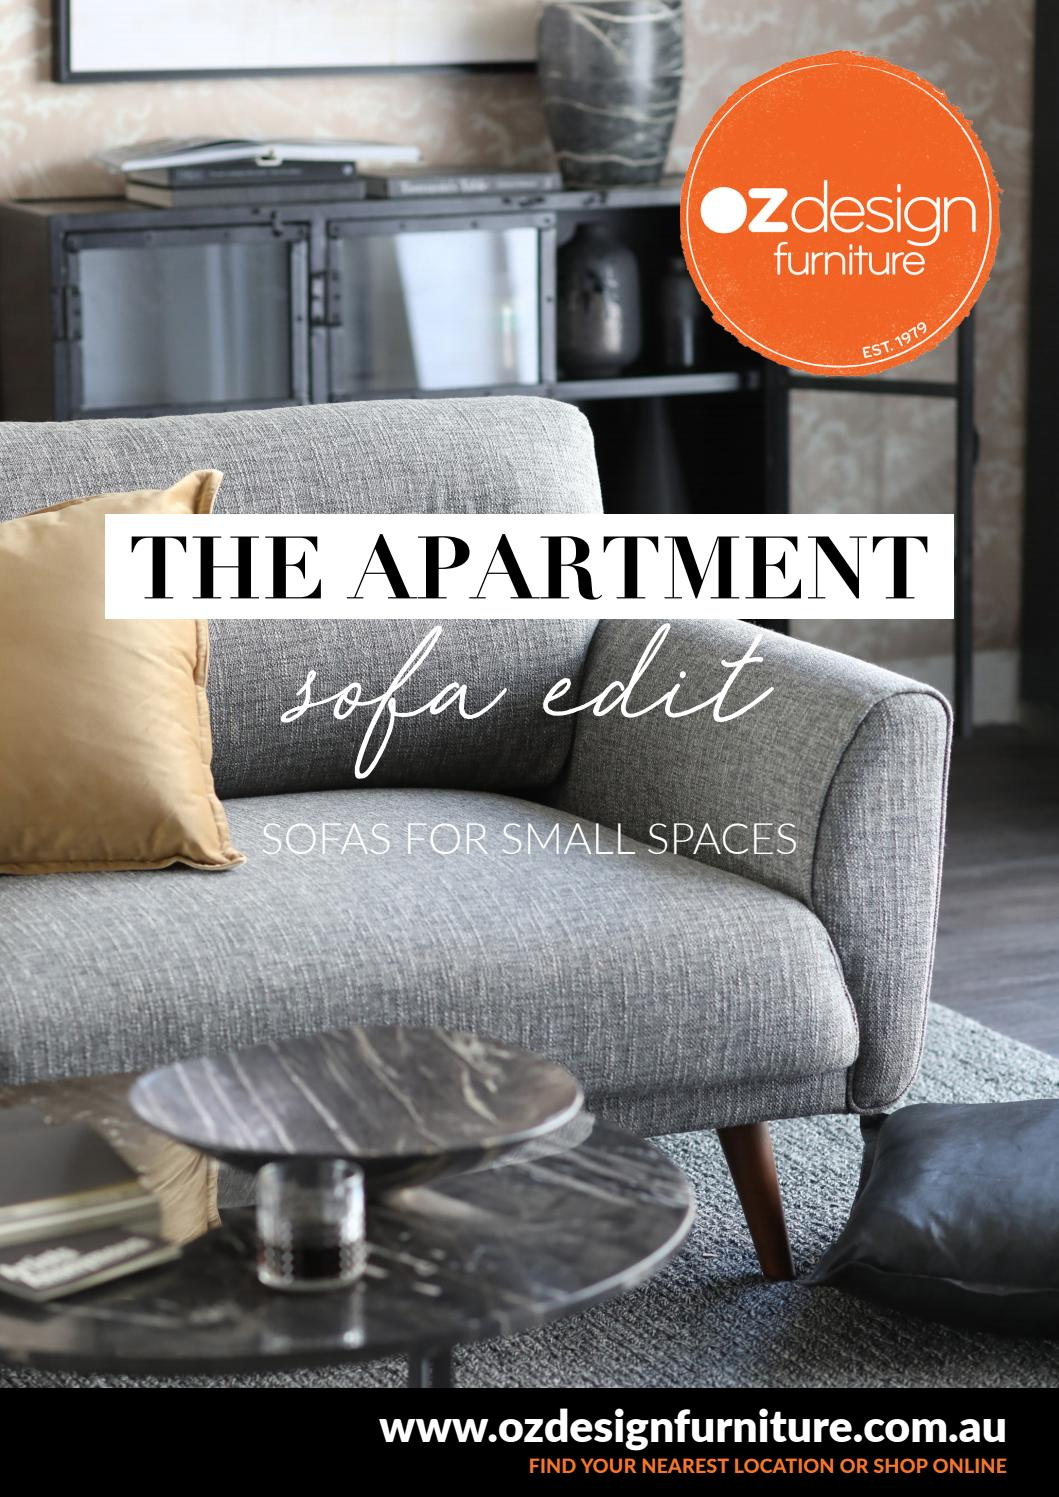 Furniture Shops In Hoppers Crossing The Apartment Sofa Edit By Oz Design Furniture